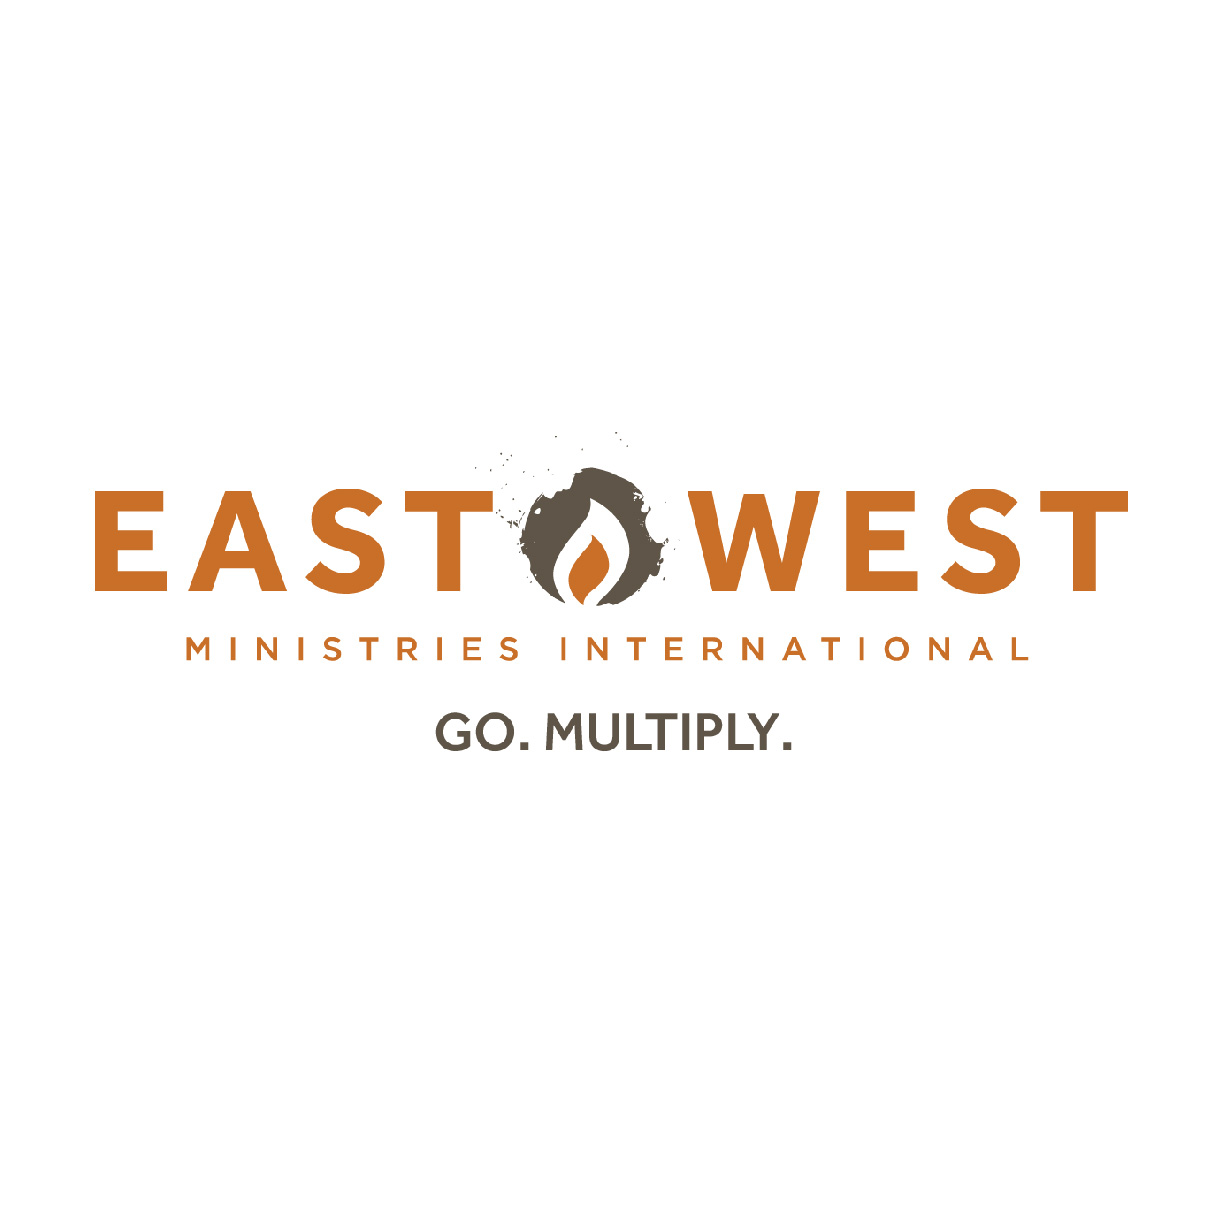 East West MInistries